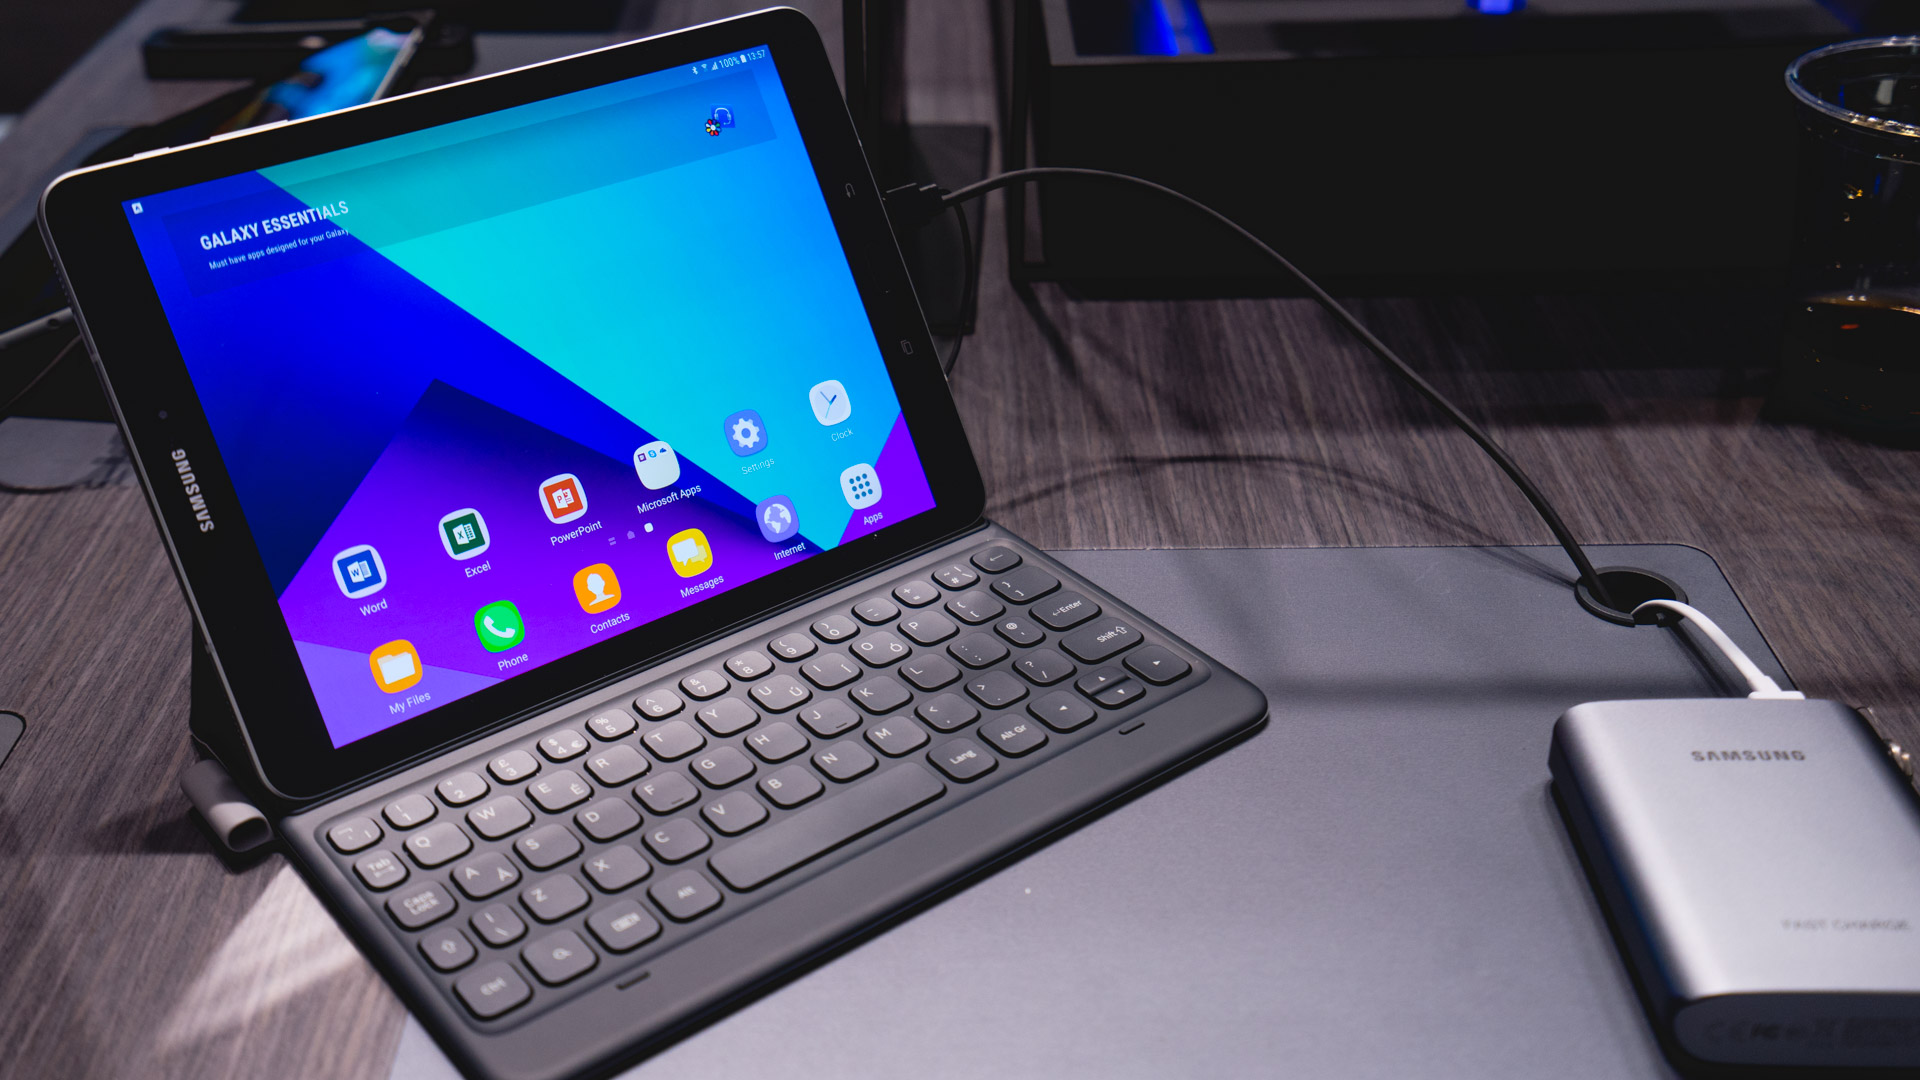 Galaxy Tab S3 Keyboard